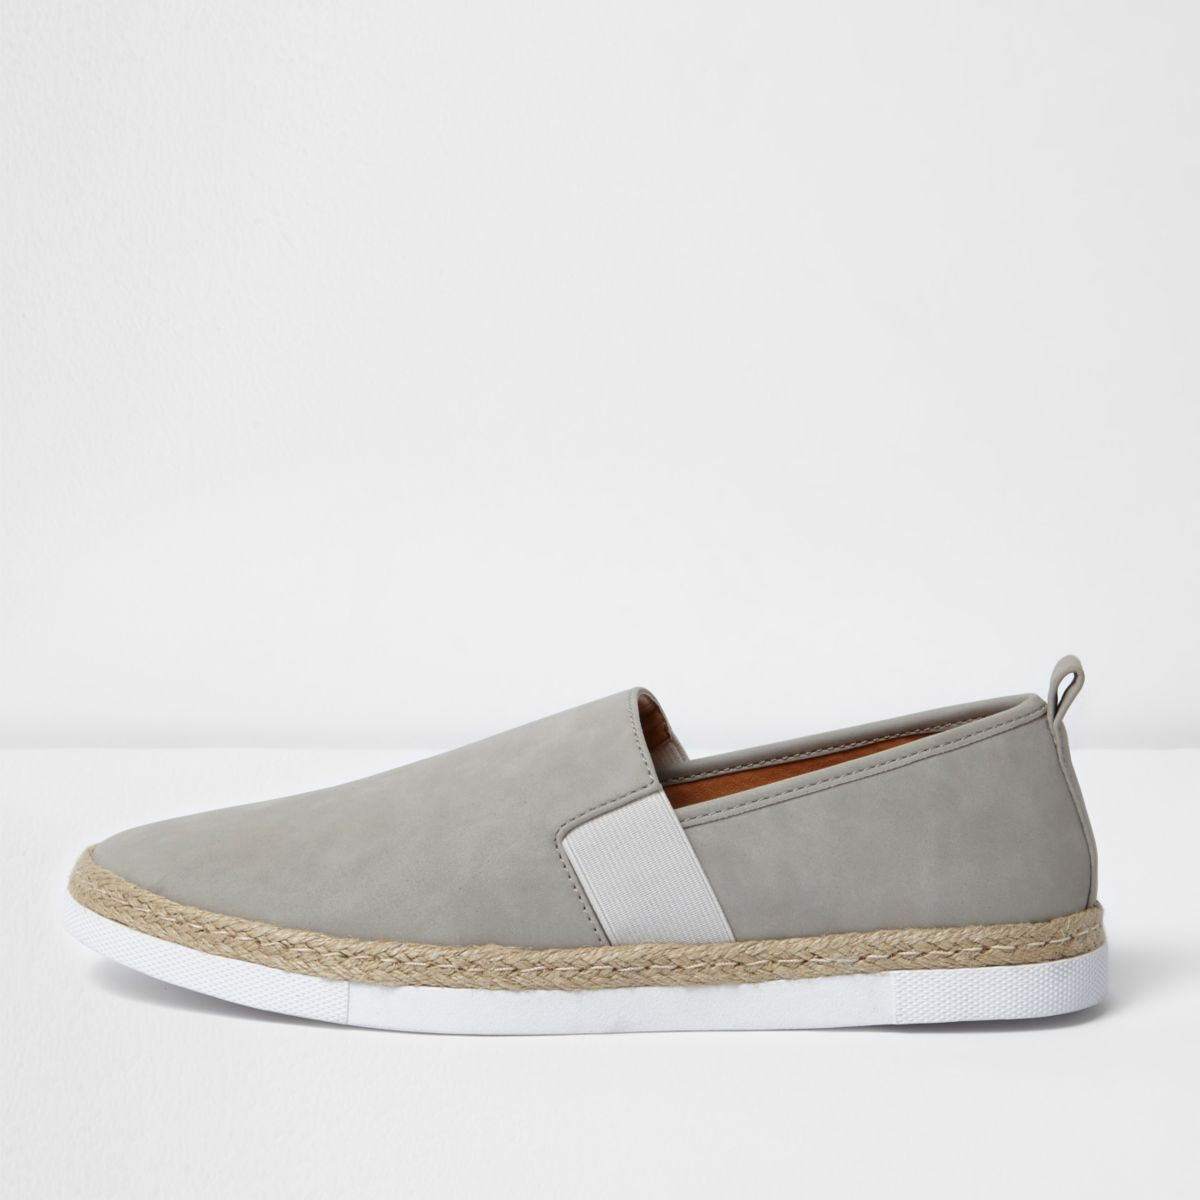 Light grey espadrille plimsolls